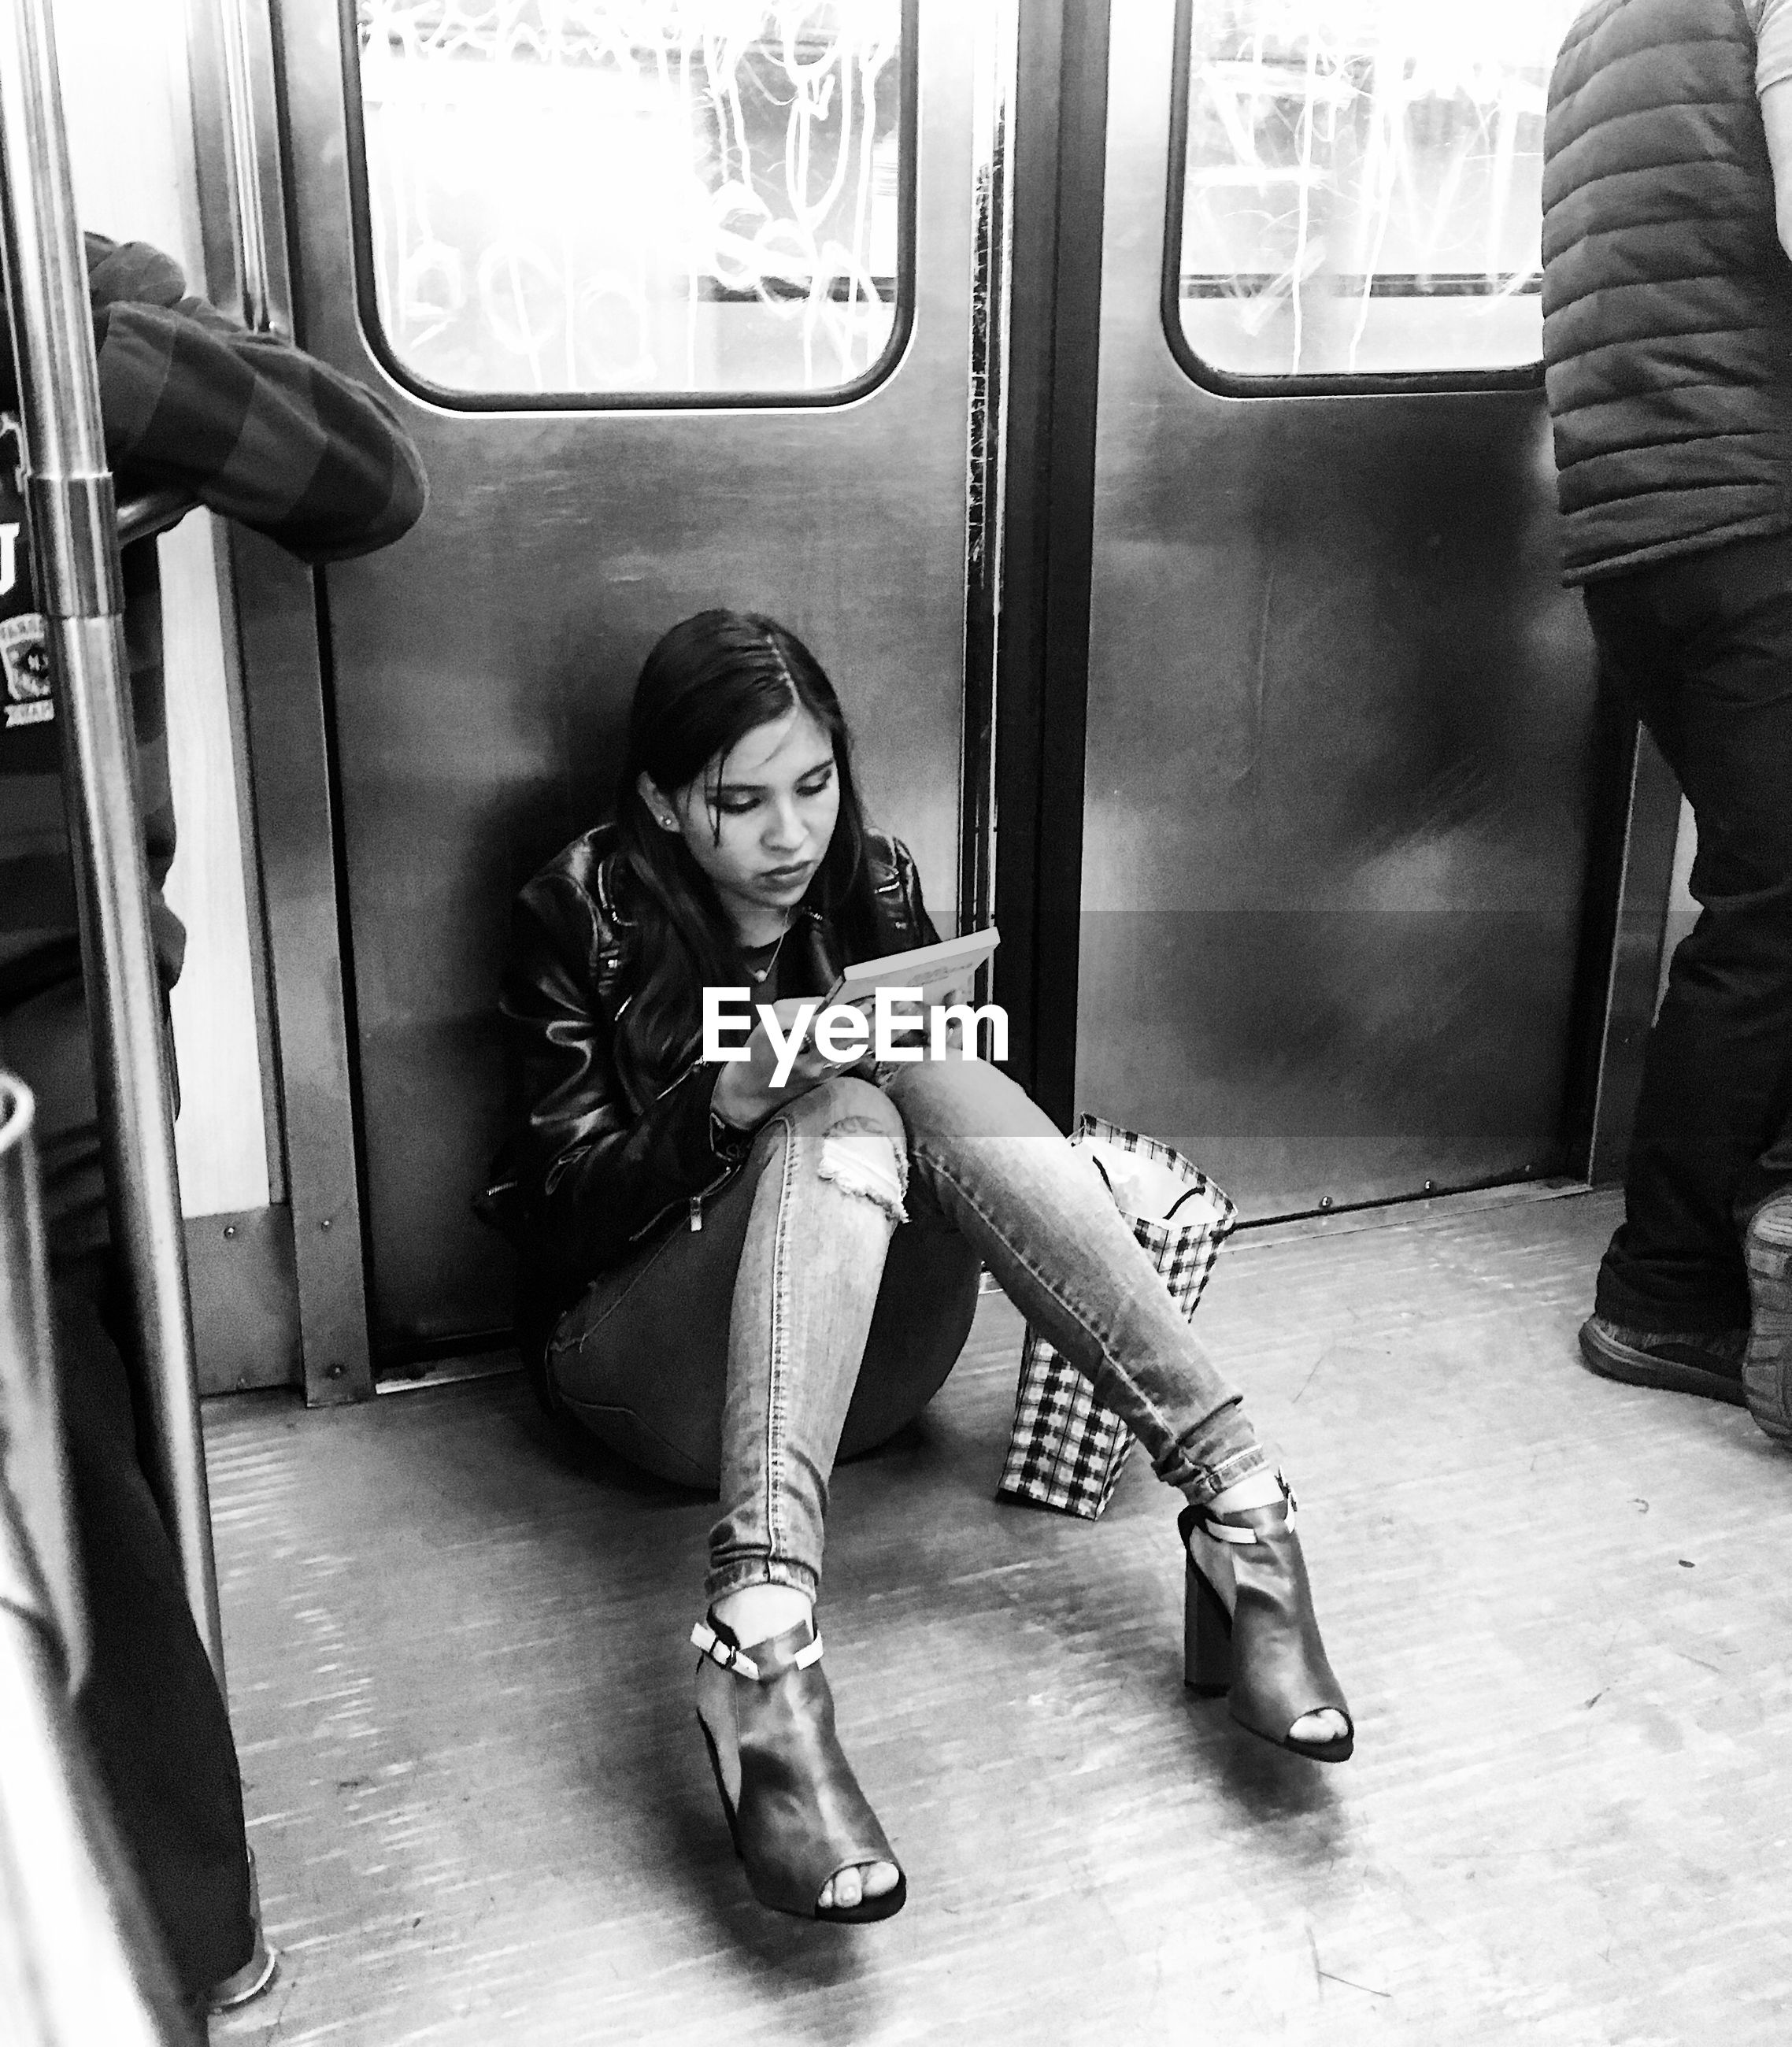 window, sitting, subway train, women, transportation, public transportation, adult, lifestyles, train - vehicle, adults only, mode of transport, beauty, one person, people, young women, one woman only, human body part, commuter, indoors, train interior, only women, beautiful woman, young adult, day